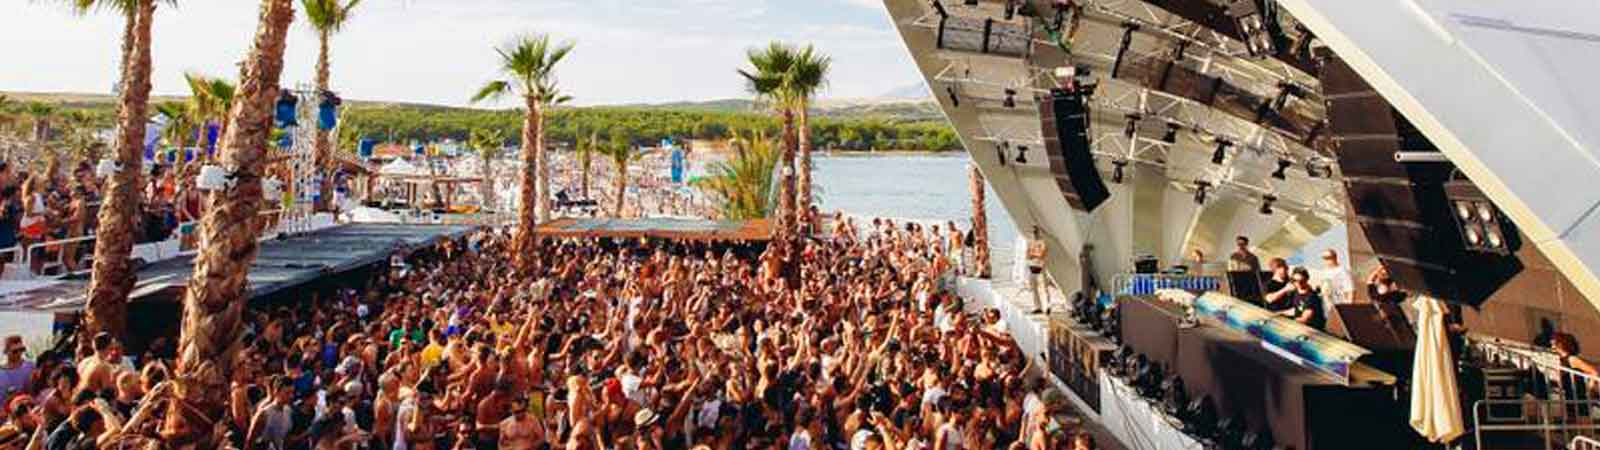 Papaya Stage Novalja Zrce Beach